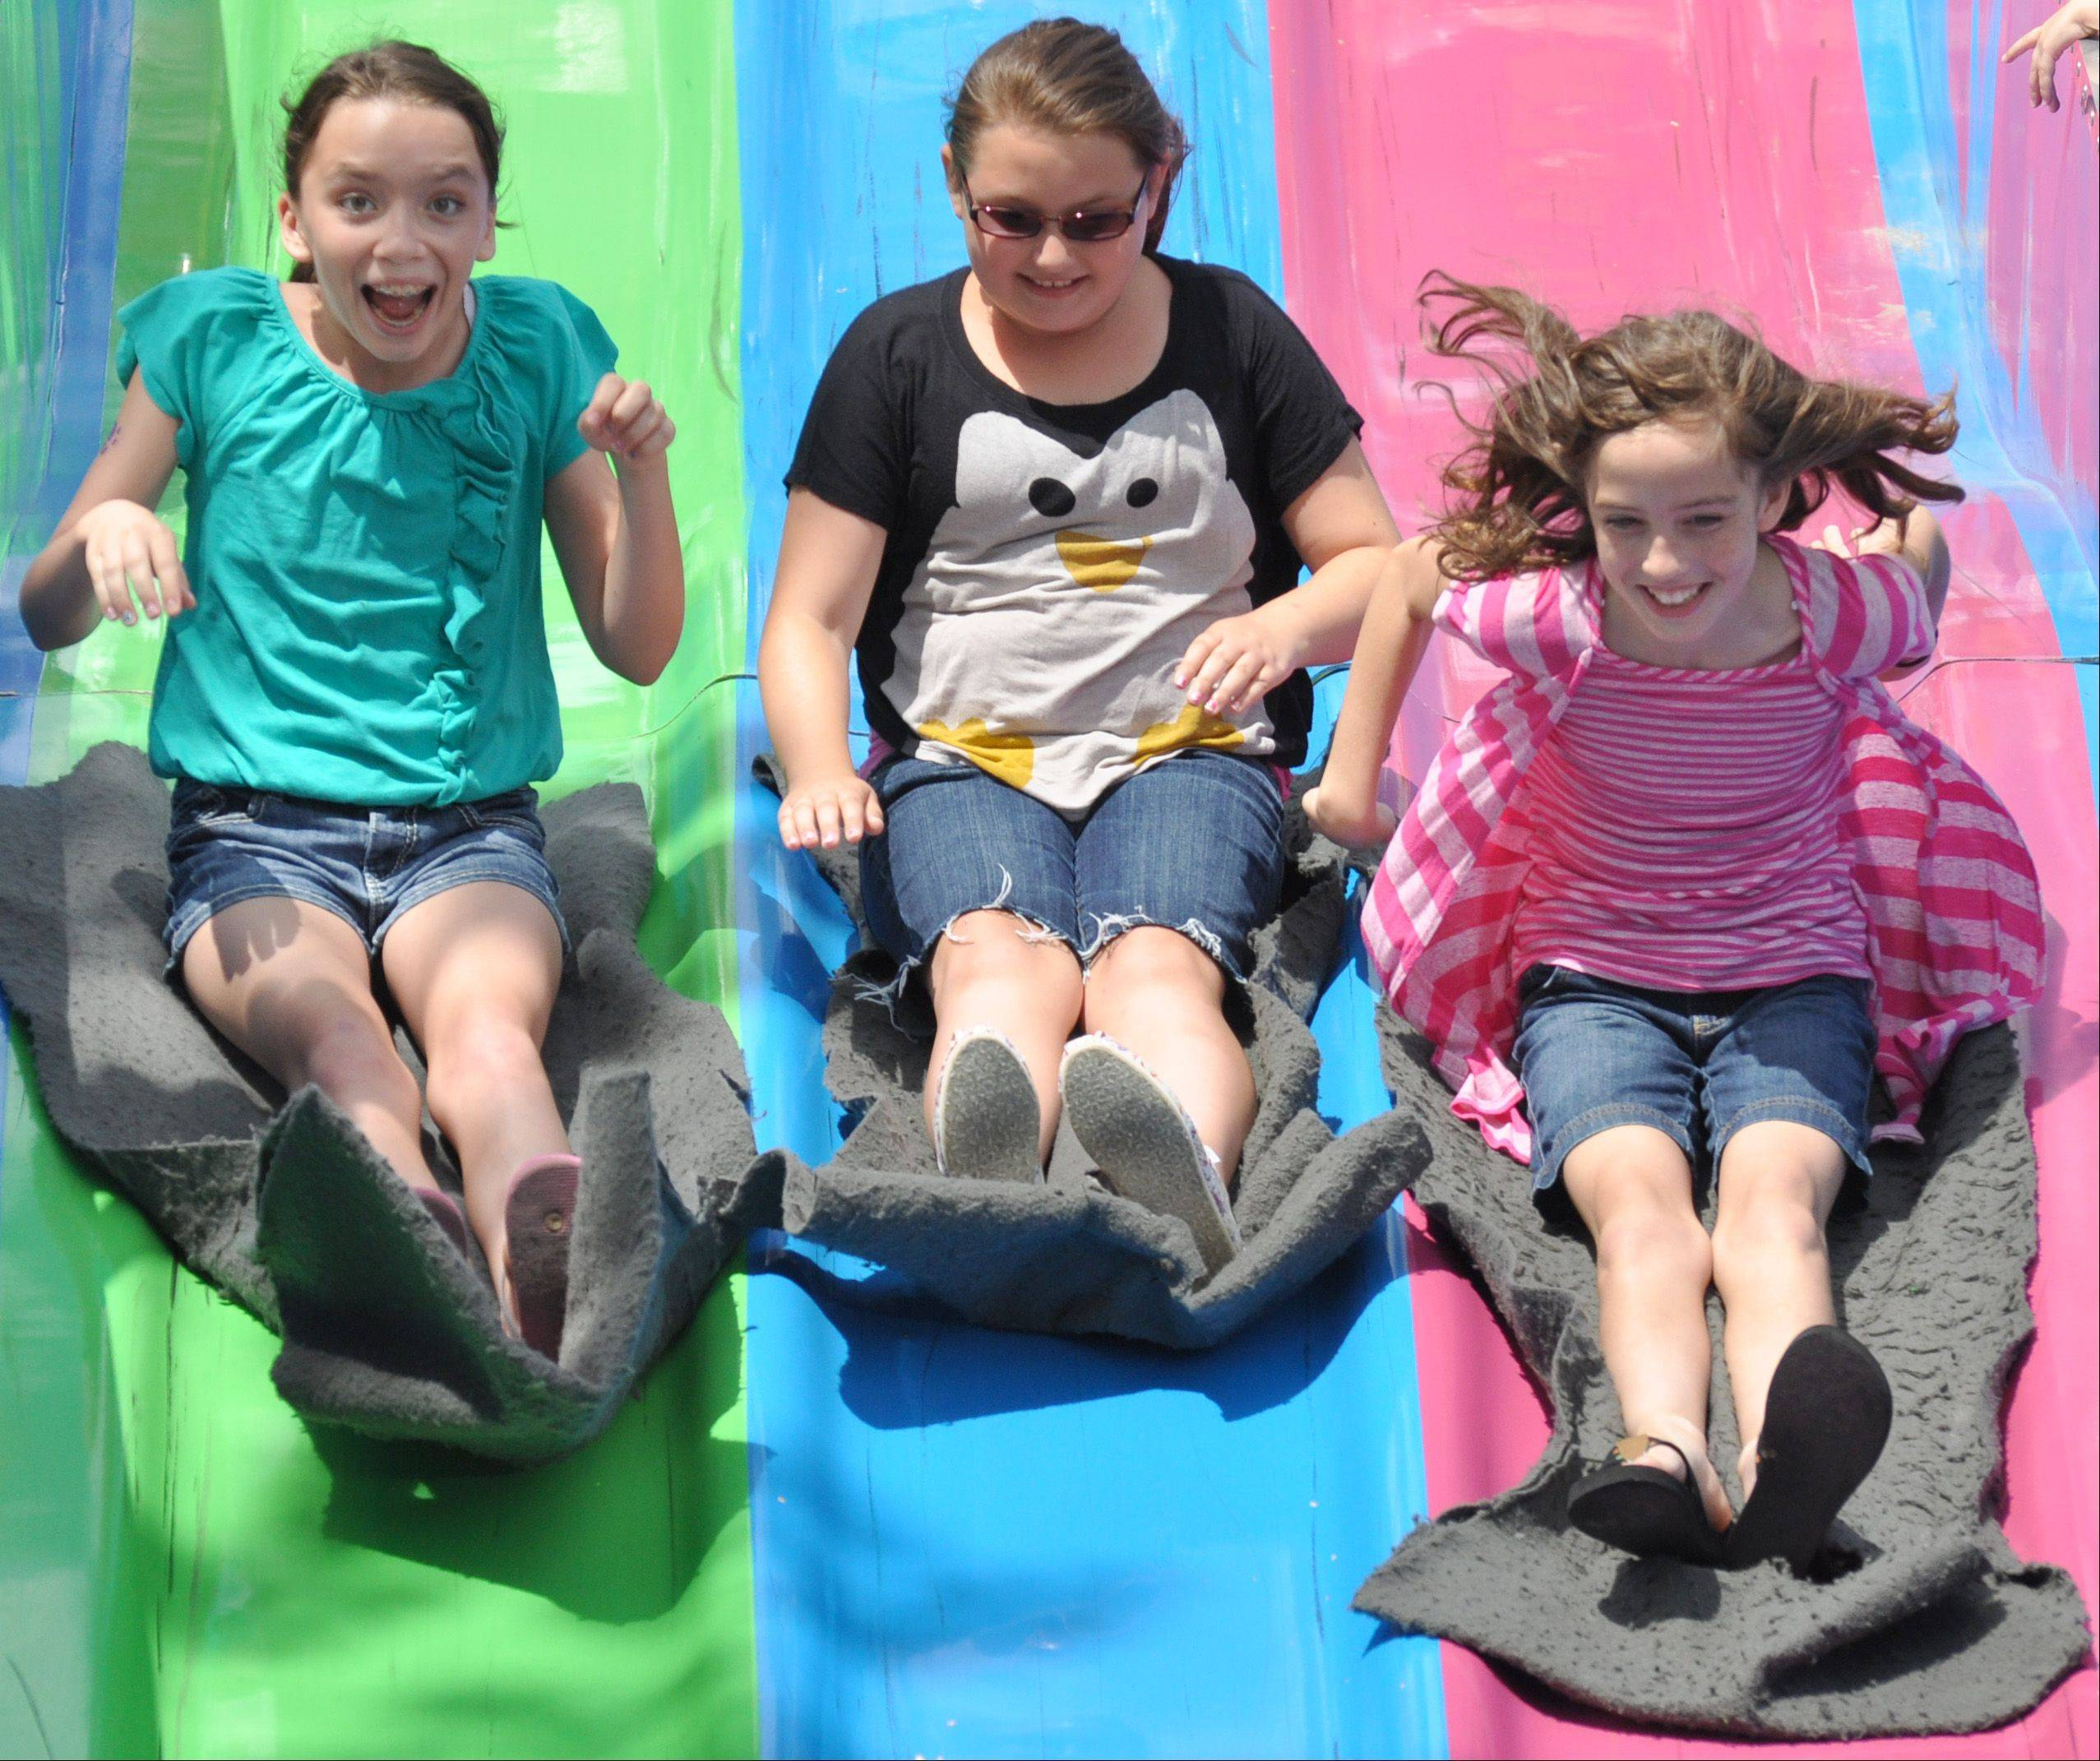 From left, Sarah Hubbartt, Jessica Jablonowski, and Caroline Hubbartt, all of Gurnee, ride down the Fun Slide during Gurnee Days Saturday.